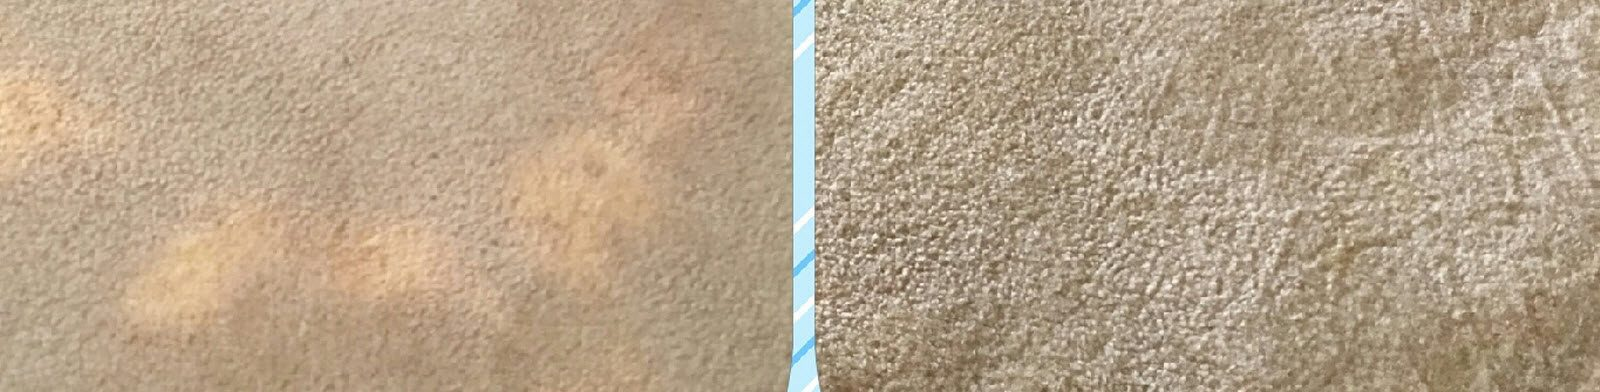 Color Revival Carpet Cleaning Dye Pro Carpet Dyeing